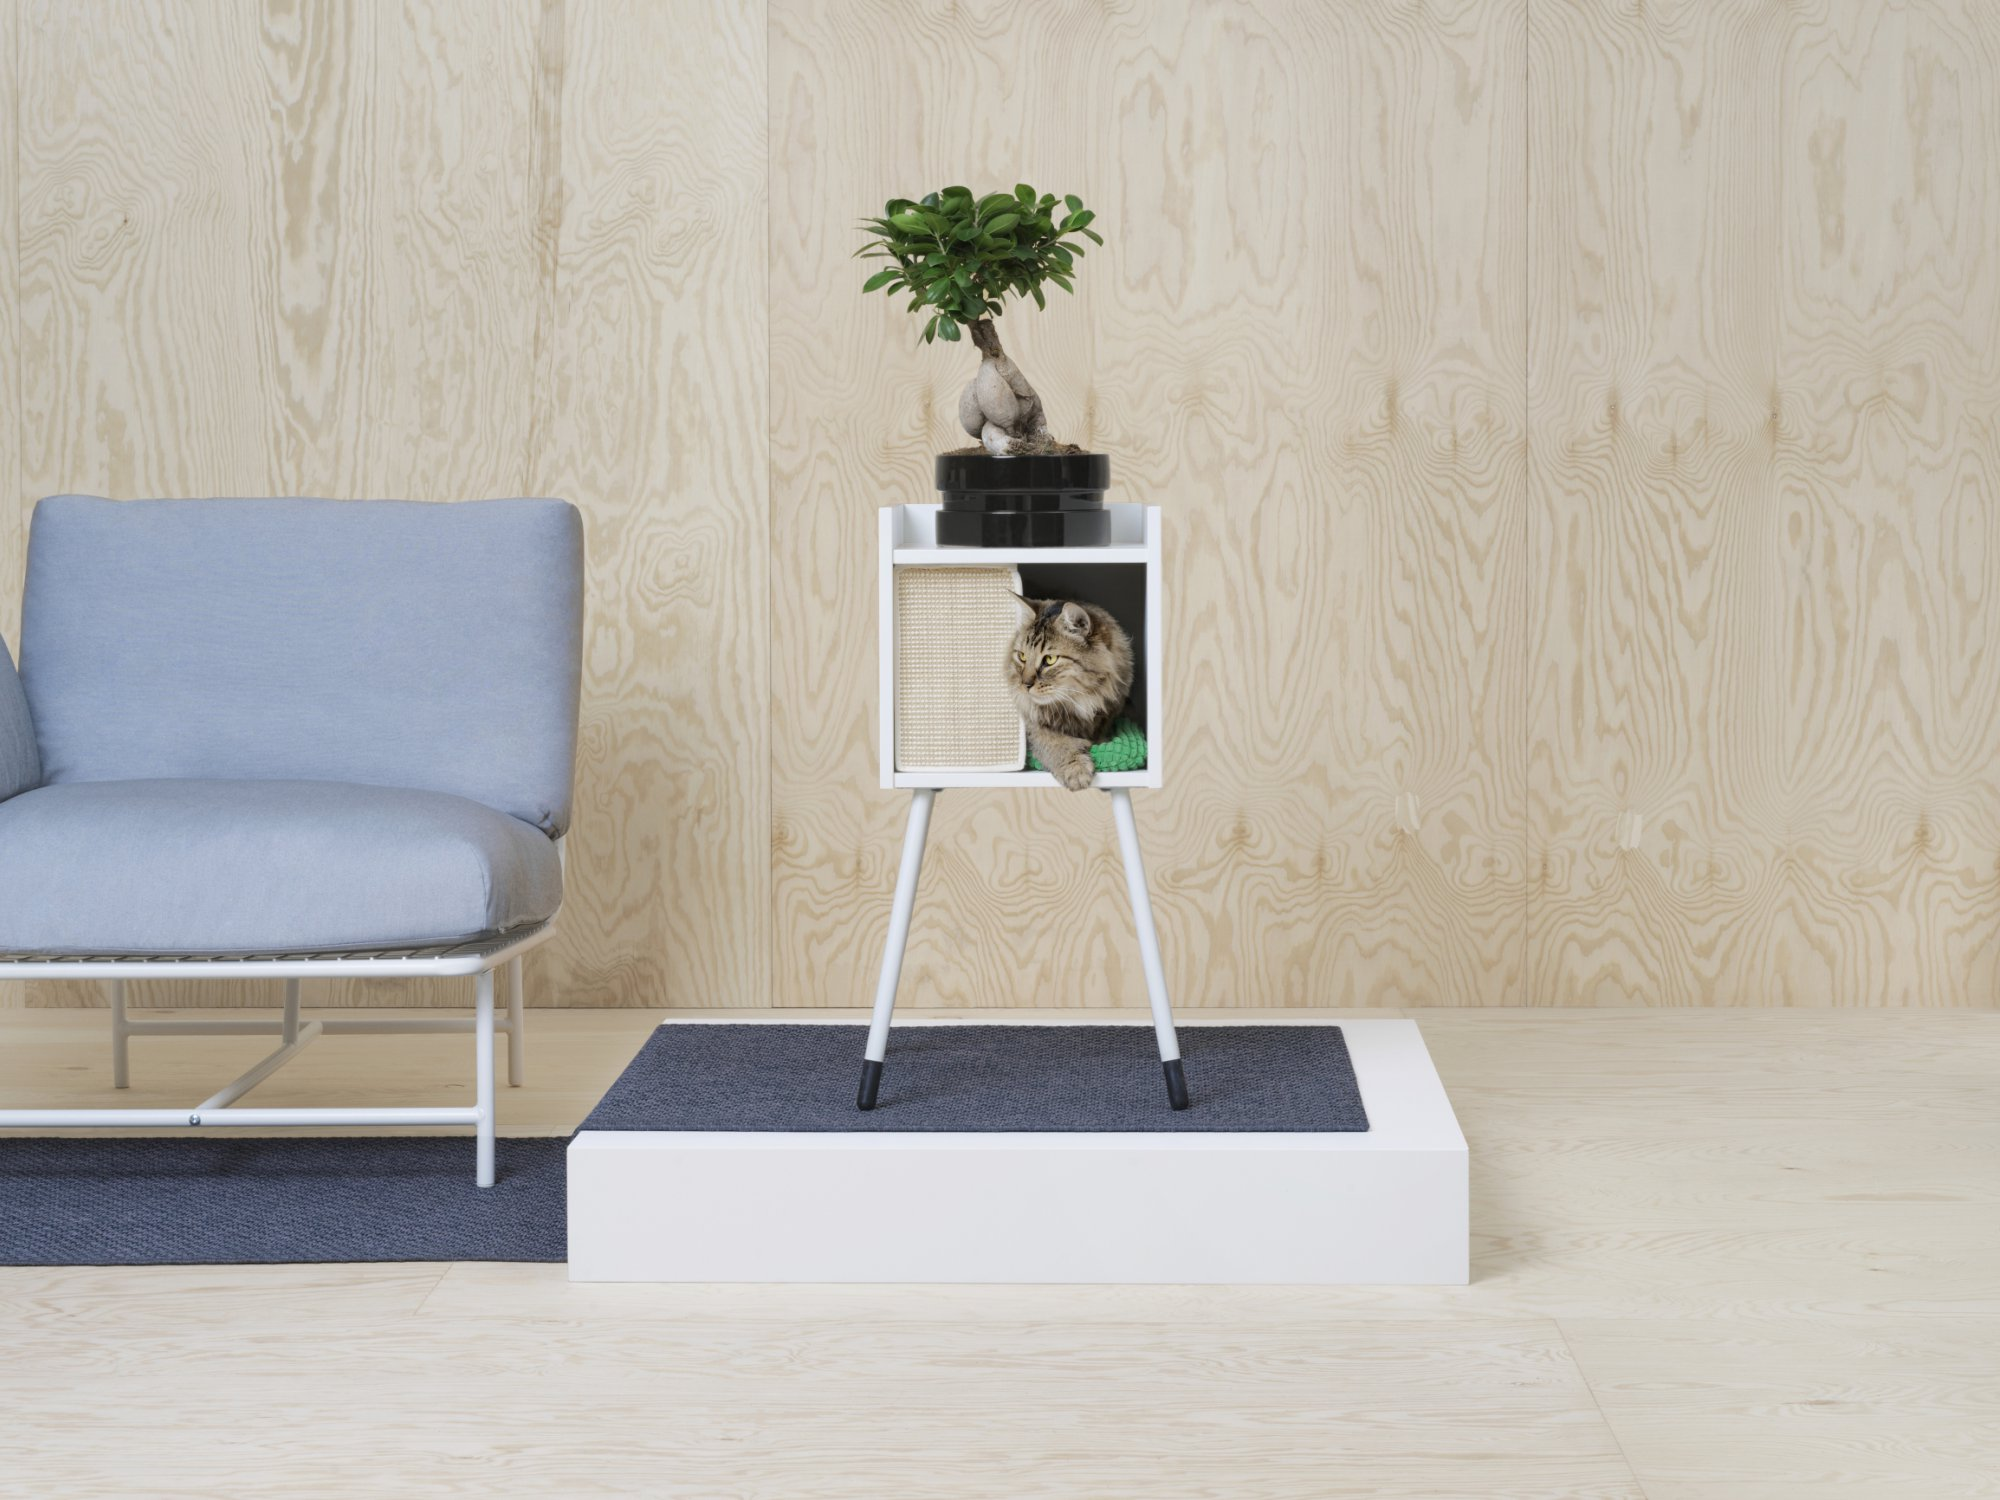 ikea lance lurvig une collection pour chiens chats la pigiste blogue. Black Bedroom Furniture Sets. Home Design Ideas